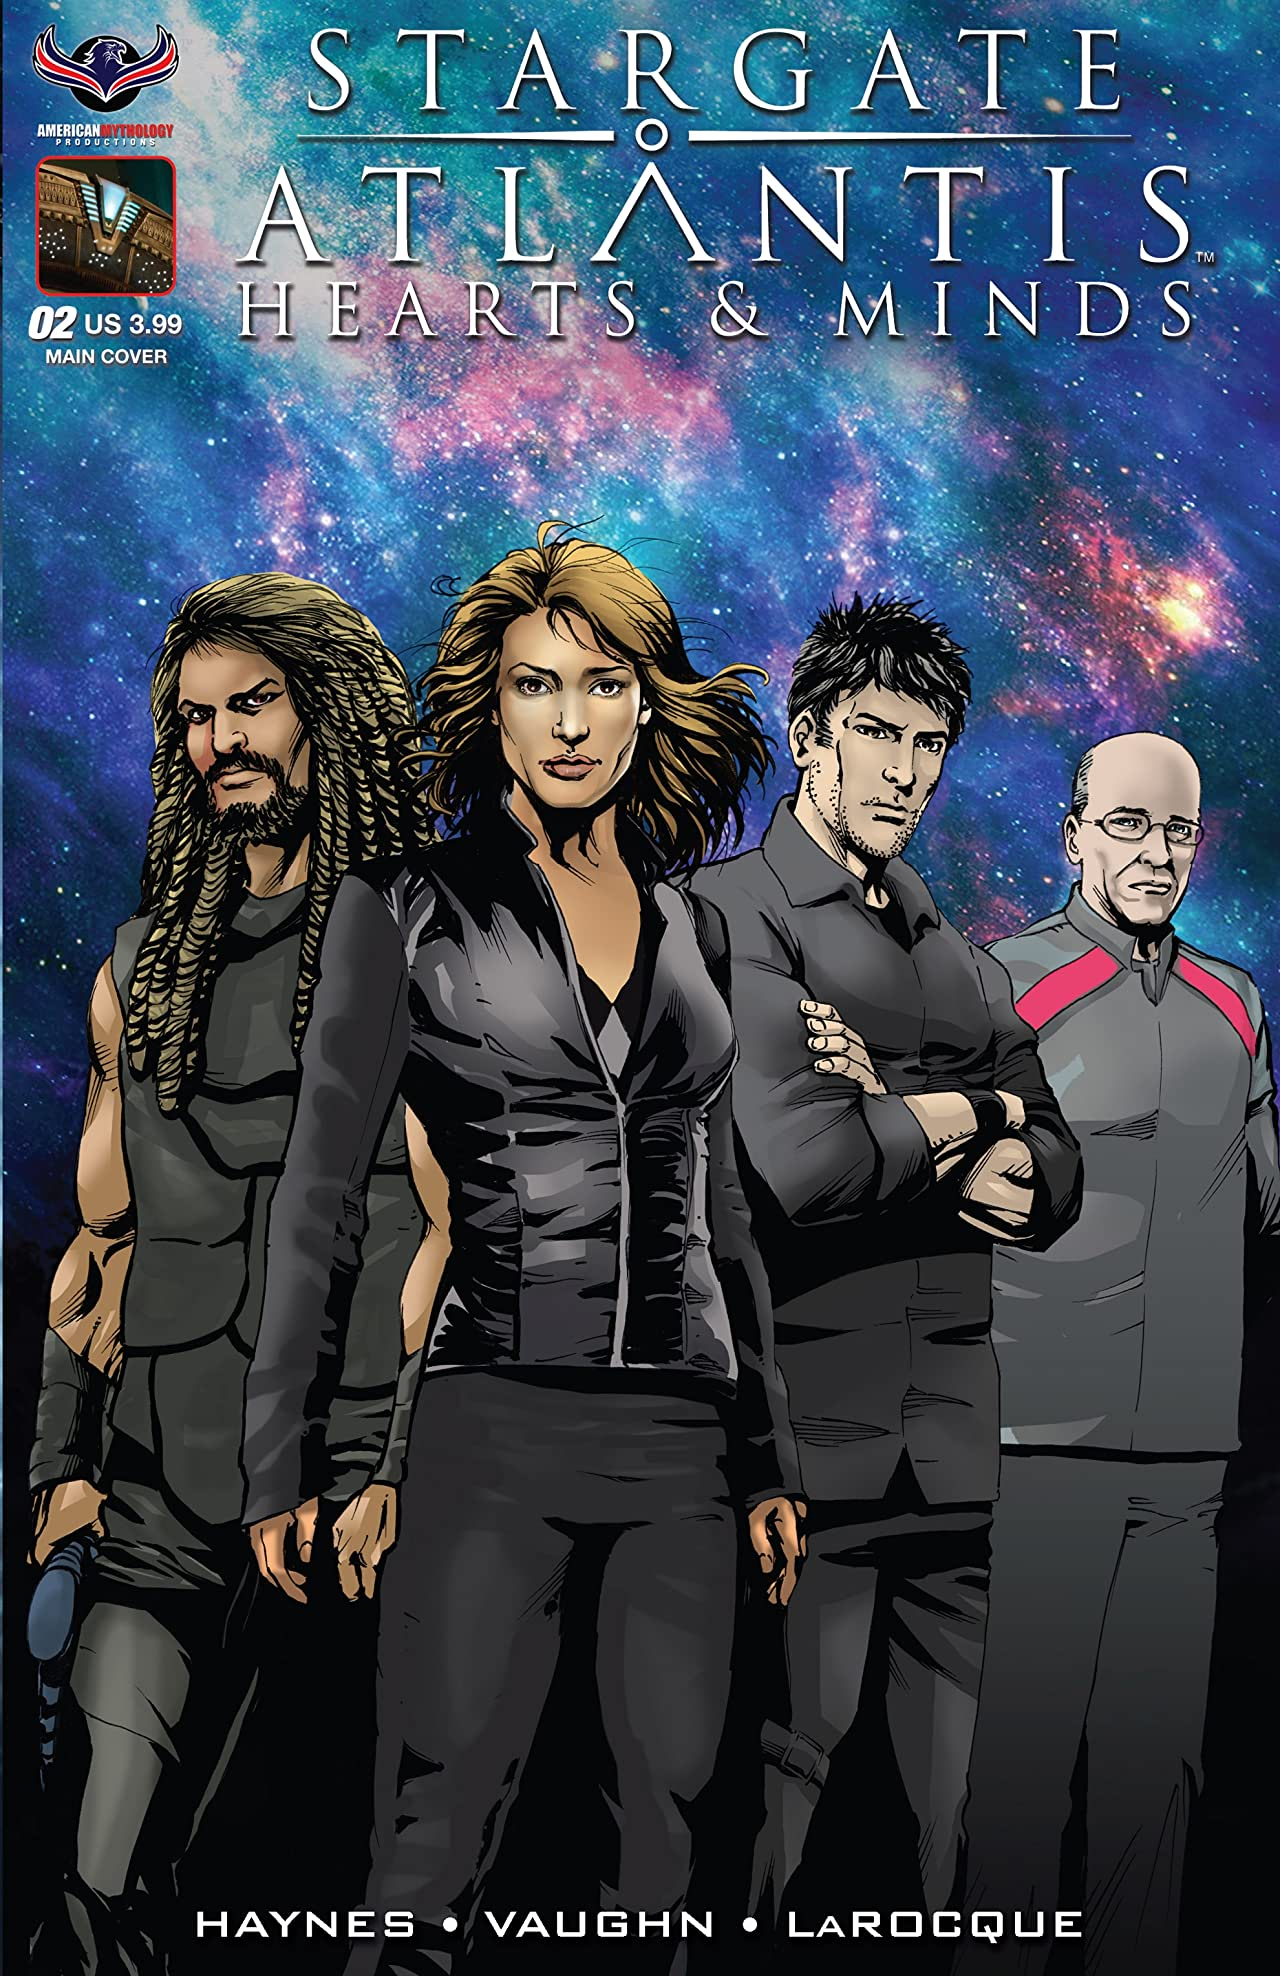 Stargate Atlantis: Hearts & Minds #2